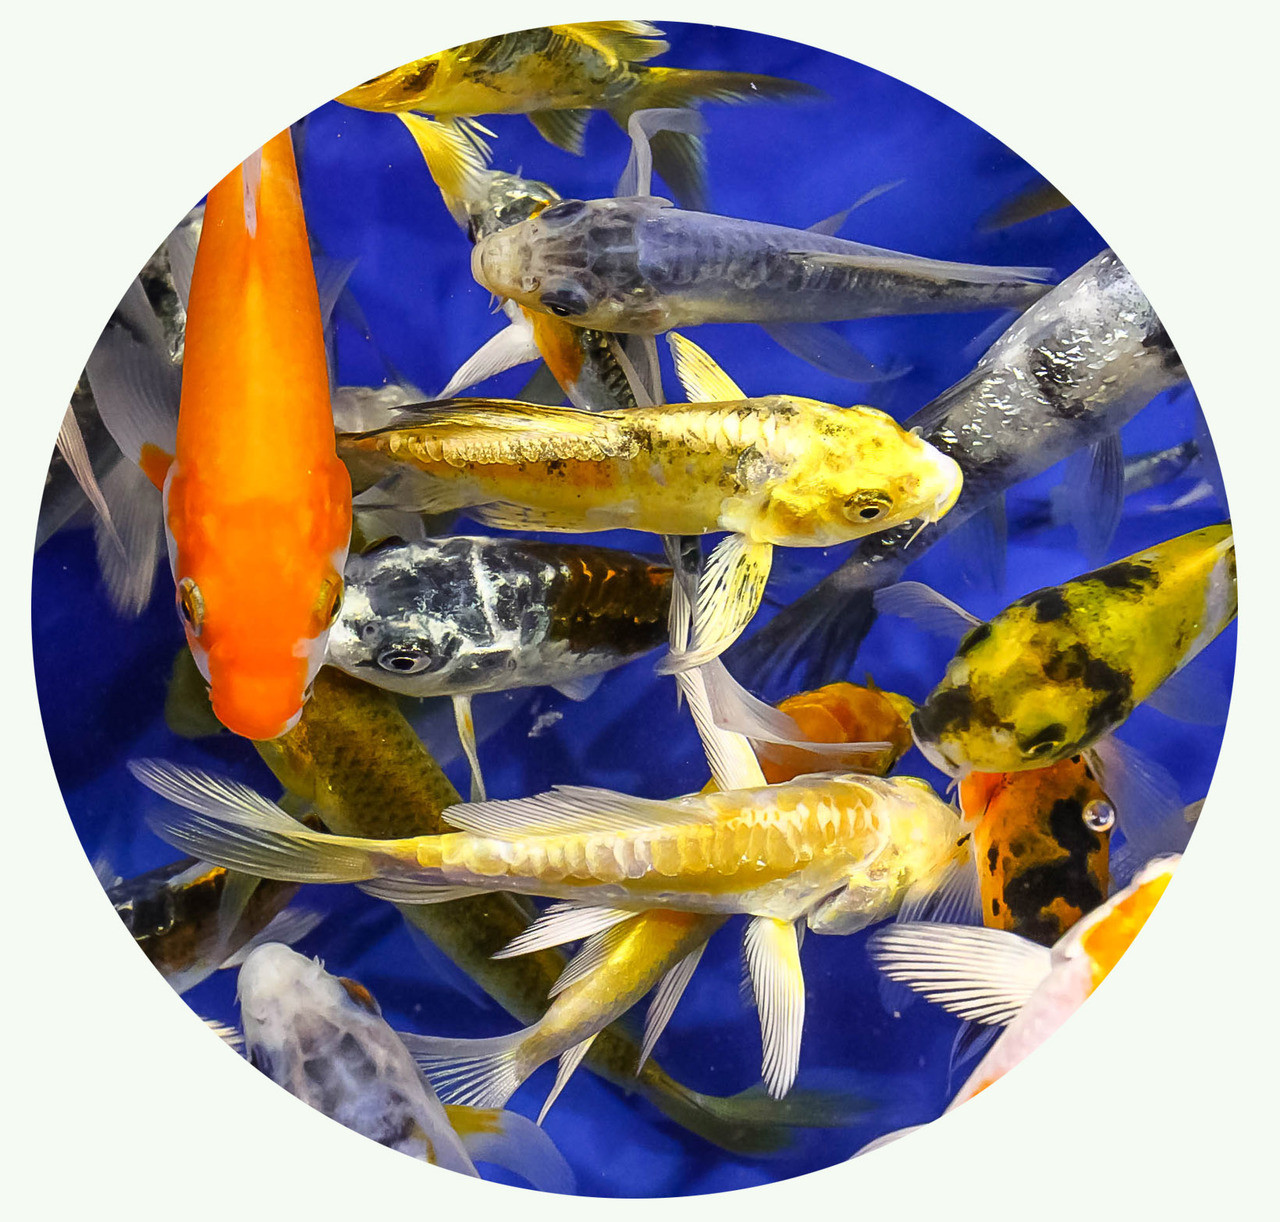 Koi For Sale Free Shipping At Thepondhub Com